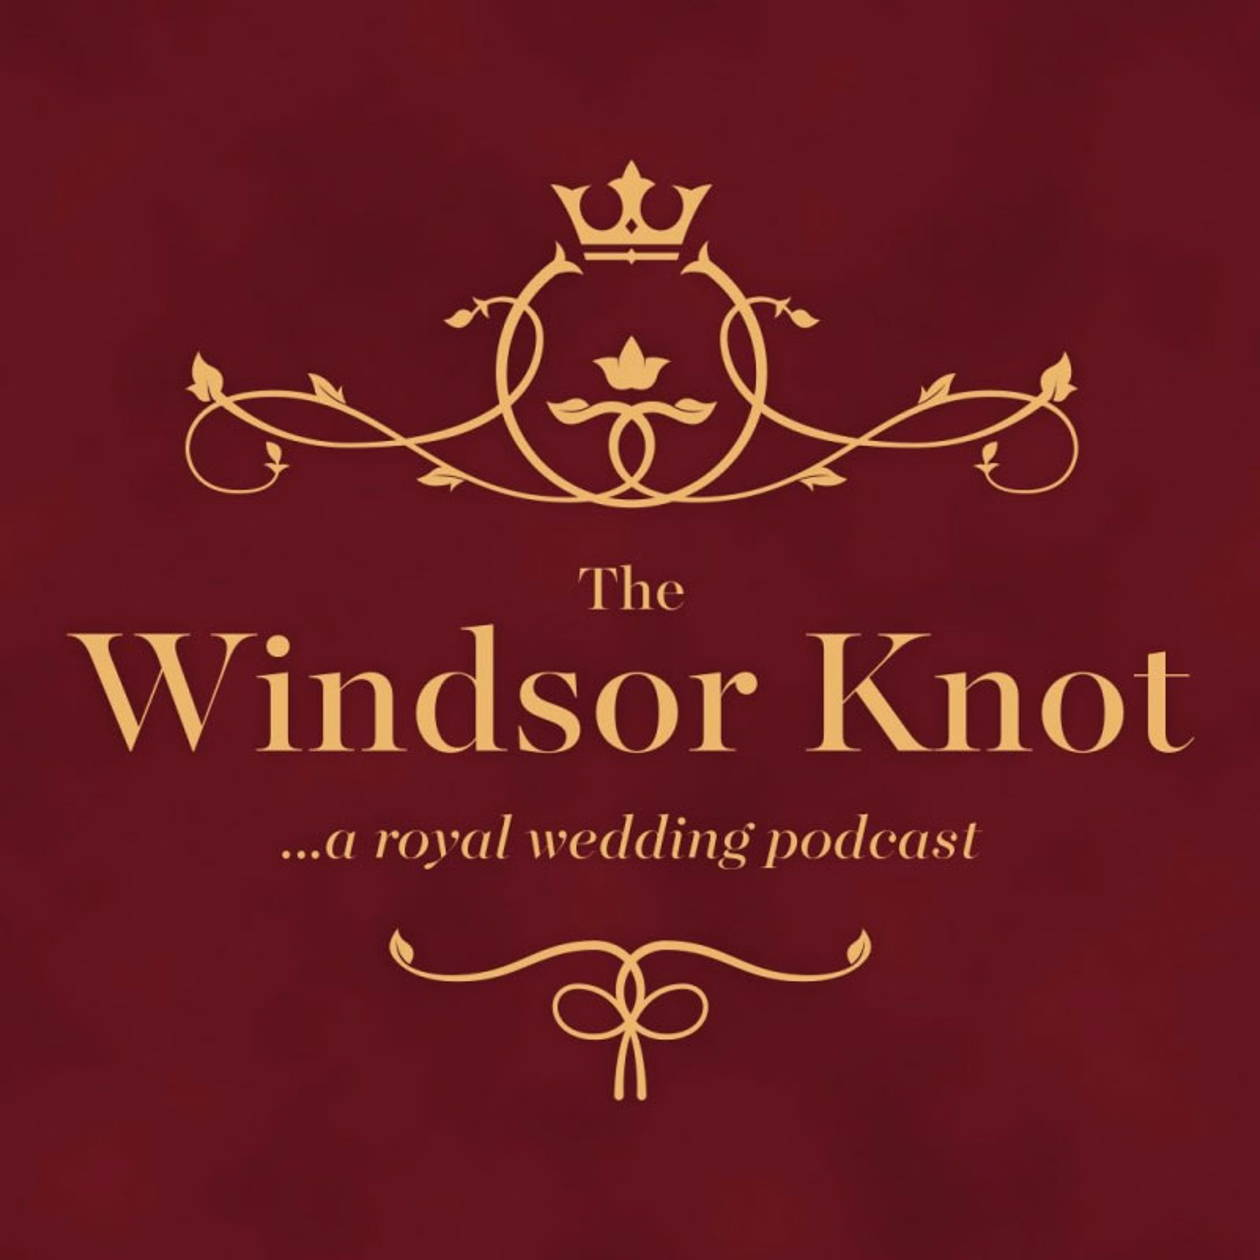 Artwork for the The Windsor Knot: A Royal Wedding Podcast podcast.